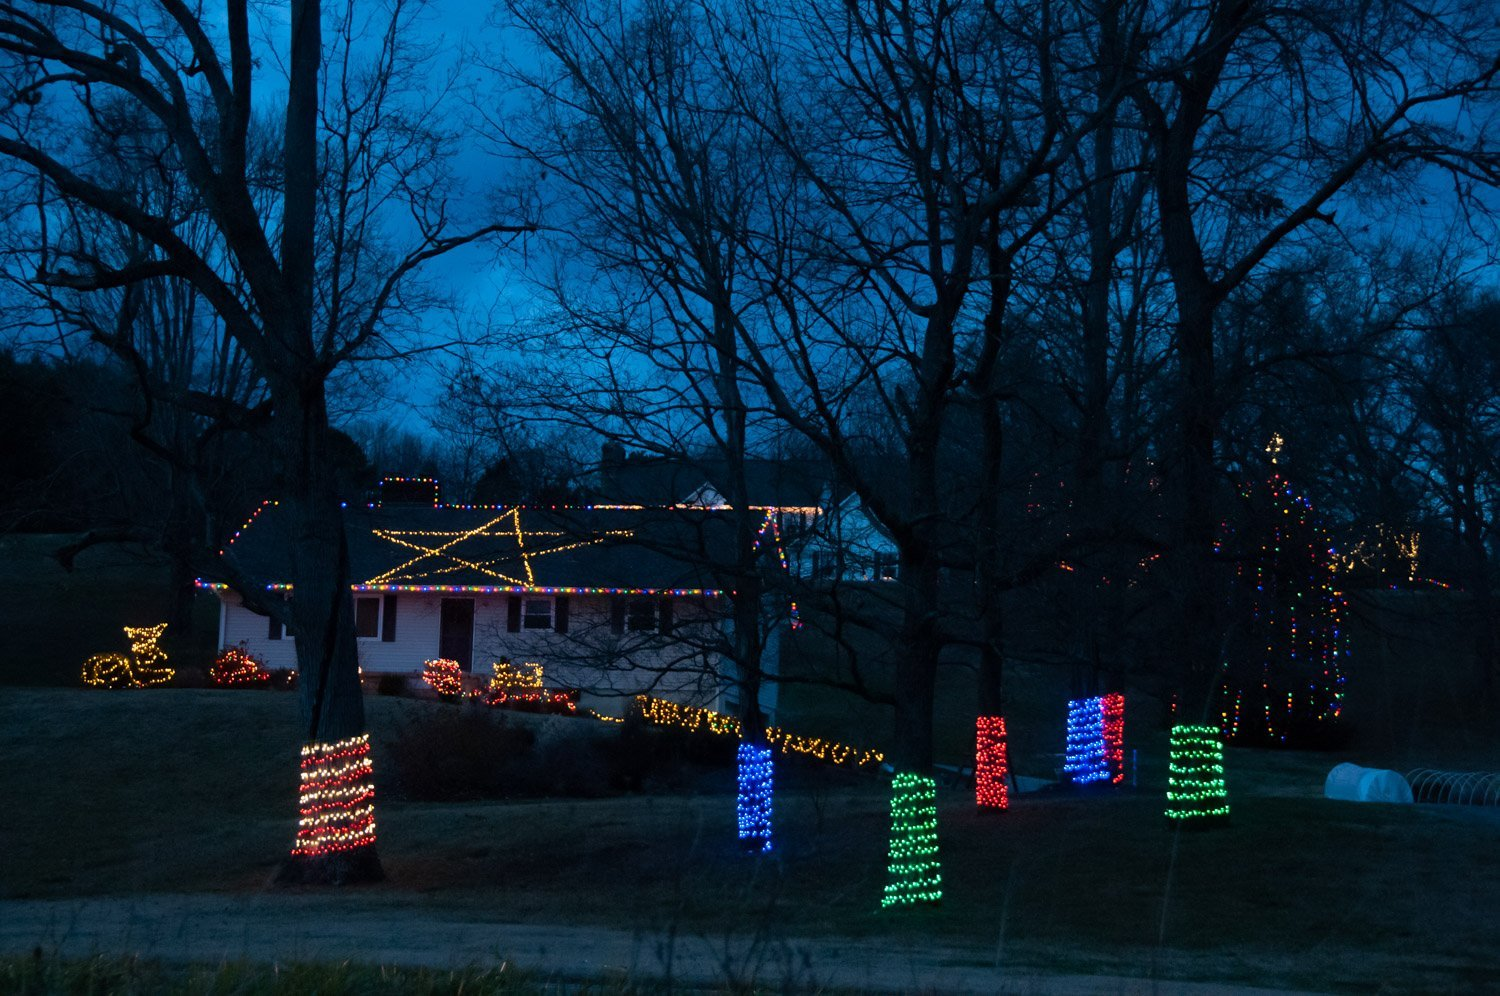 Christmas lights wrapping lower trunks in single primary colors plus multicolored lights on bushes and roof outline, while framing a giant star formed by lights on the flat of roof